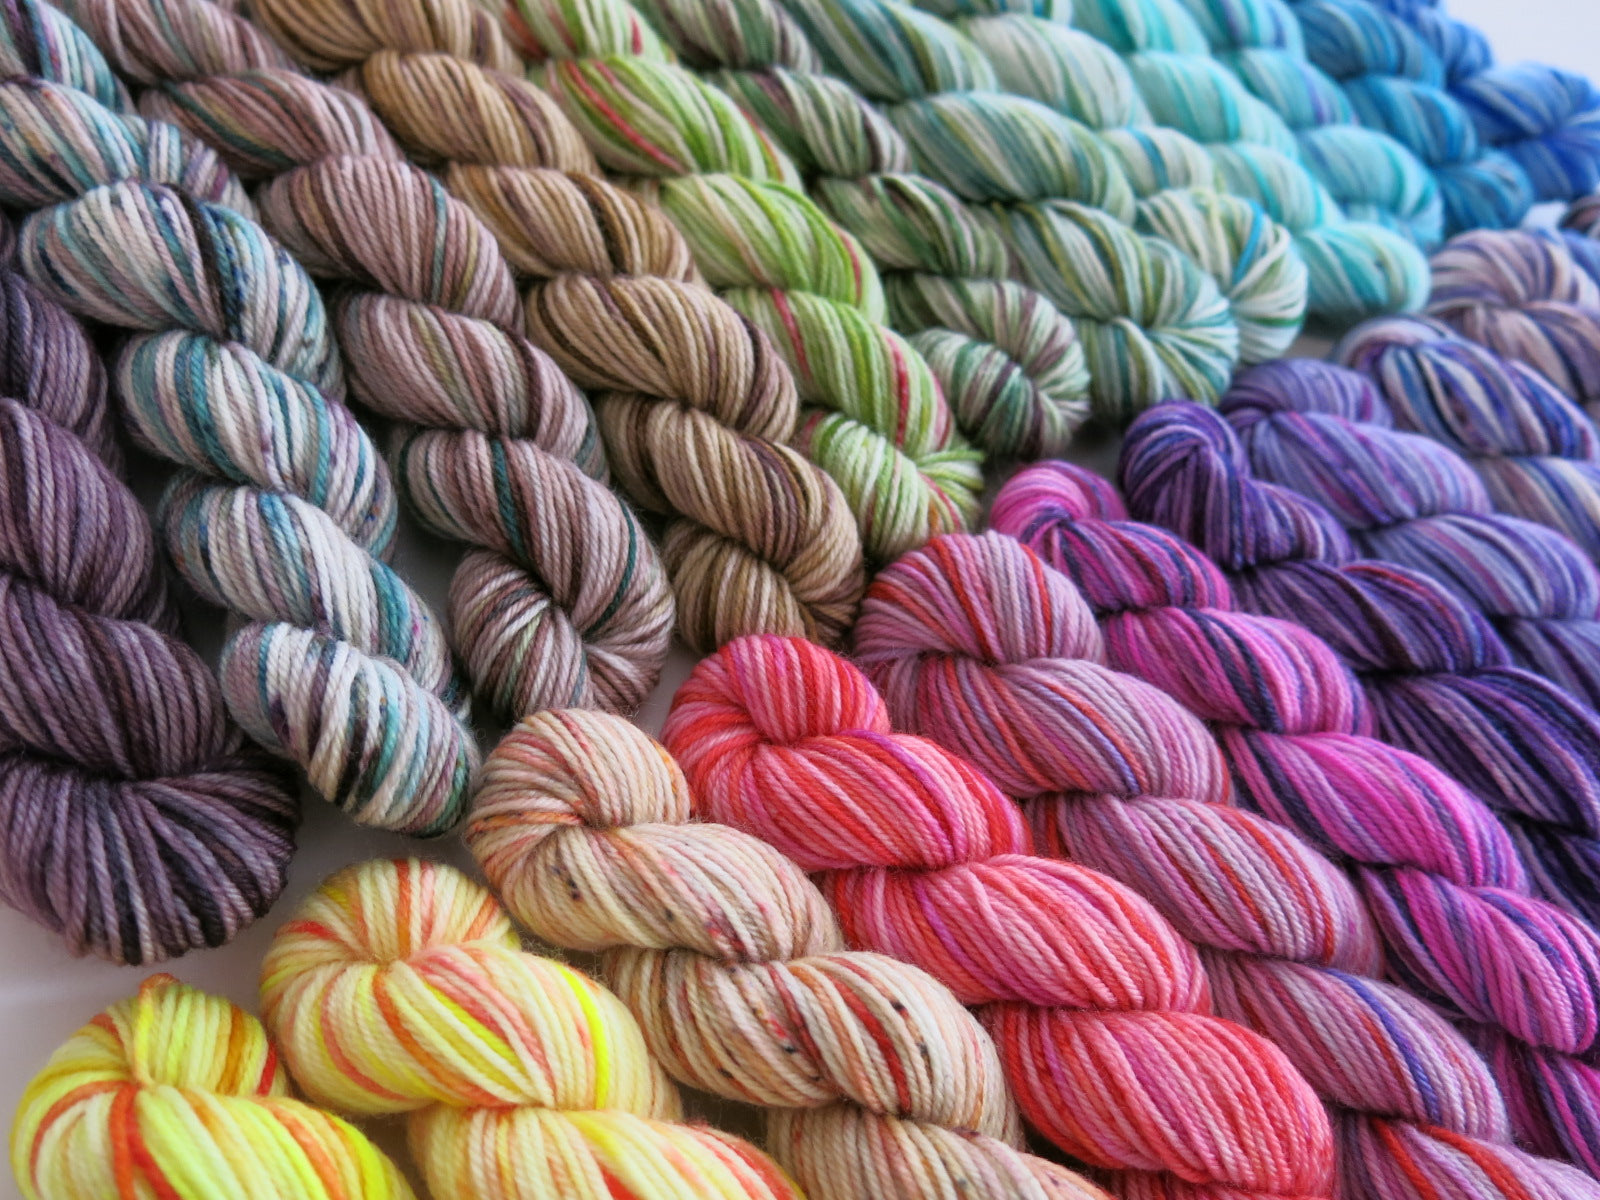 20g indie dyed mini skeins in a speckled rainbow fade